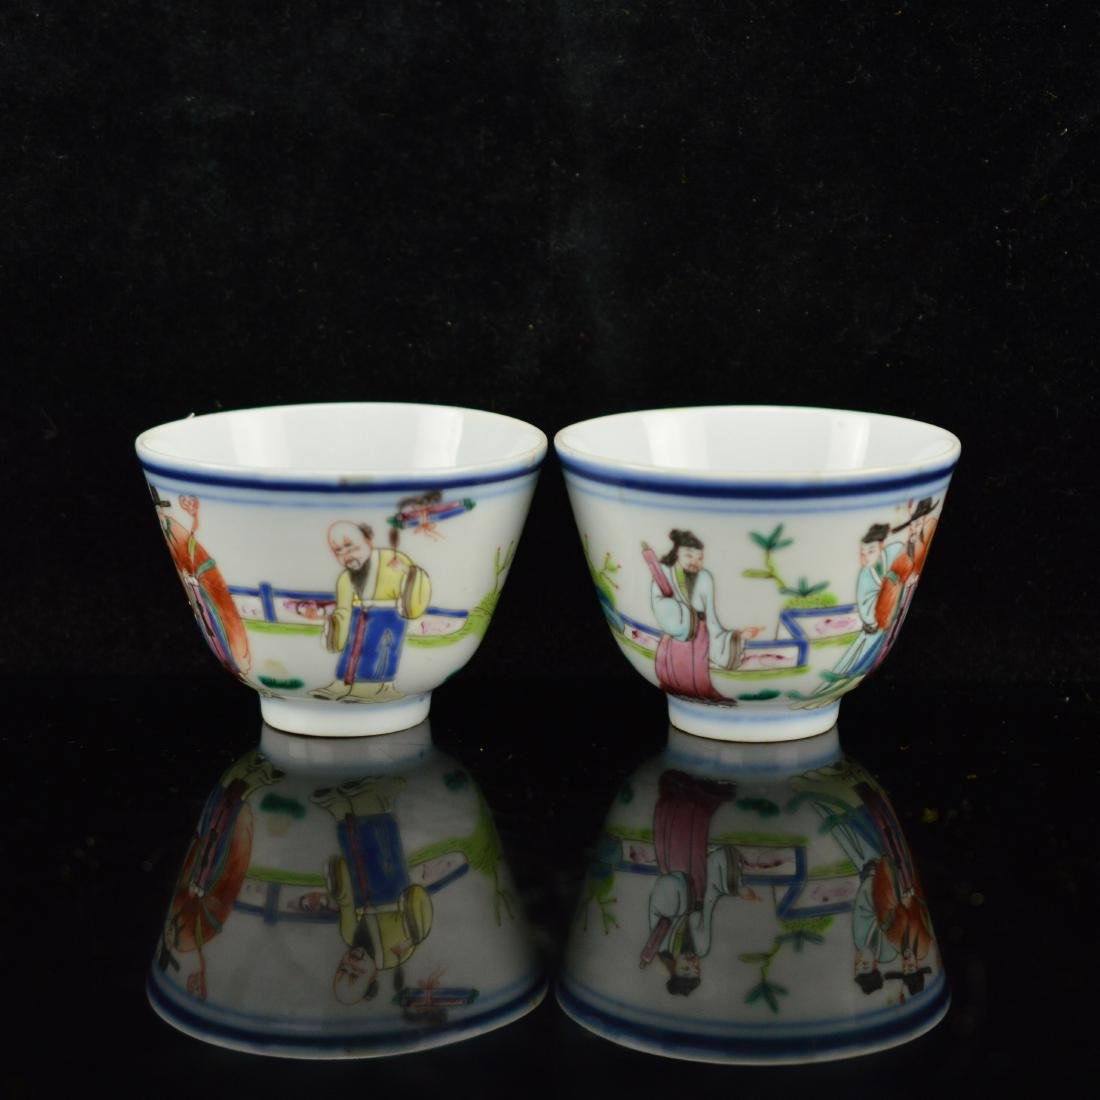 Pair of small porcelain cups